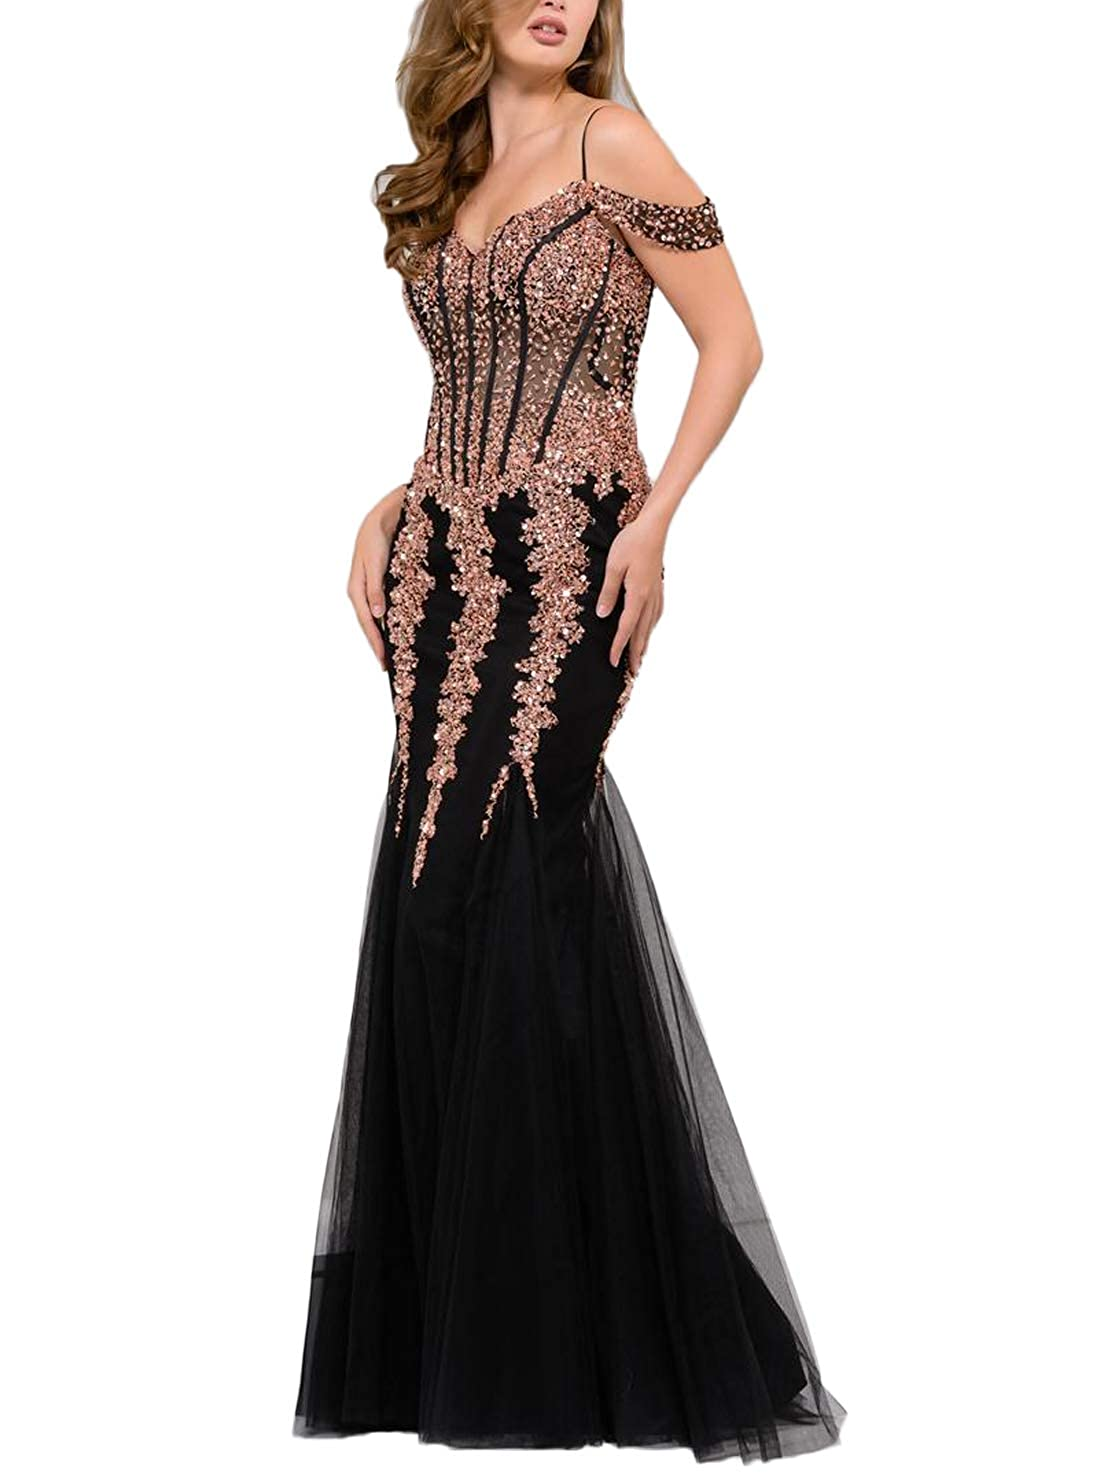 Black Yisha Bello Women's Off The Shoulder Crystal Beaded Mermaid Pro Dress Long Tulle Formal Evening Party Gowns